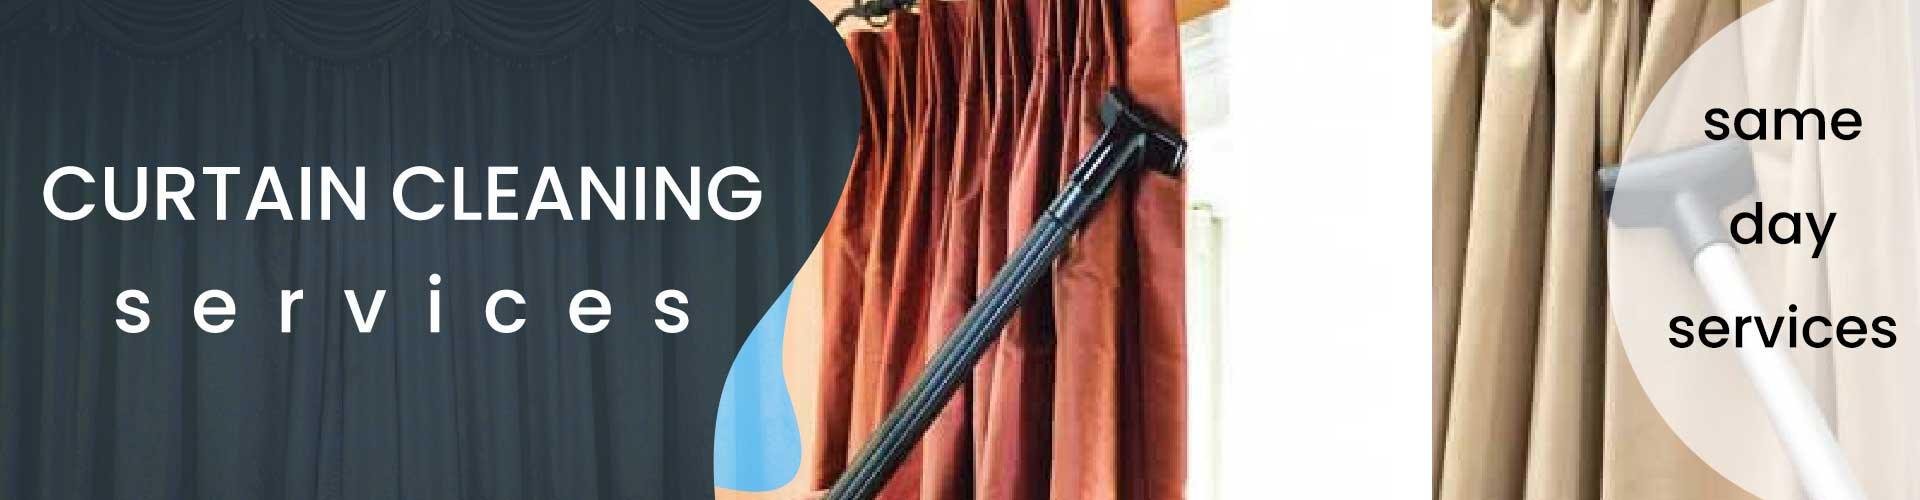 Curtain Cleaning Sydney Curtain Cleaning Melbourne 1300 513 369 Curtain Steam Dry